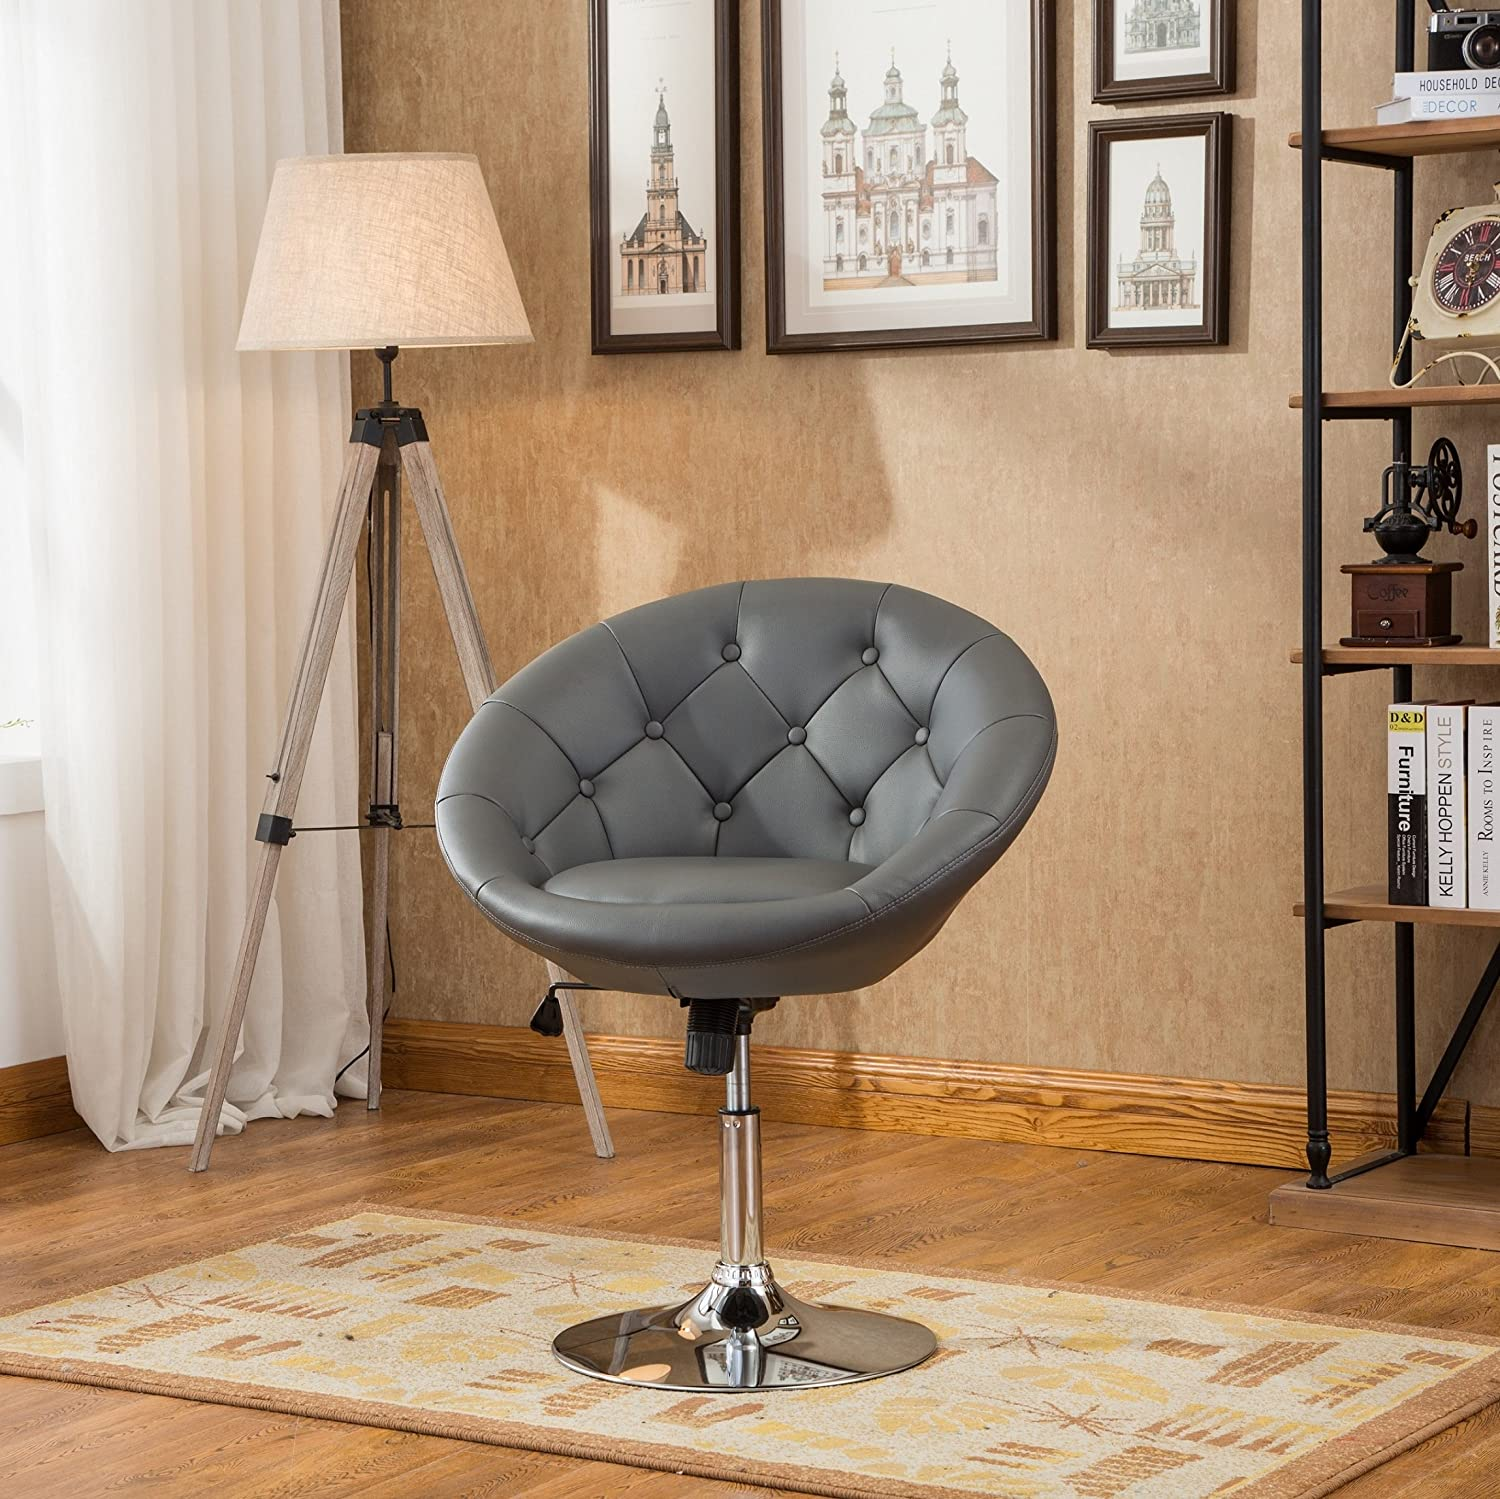 Roundhill Furniture Noas Contemporary Round Tufted Back Tilt Swiviel Accent Chair, Grey